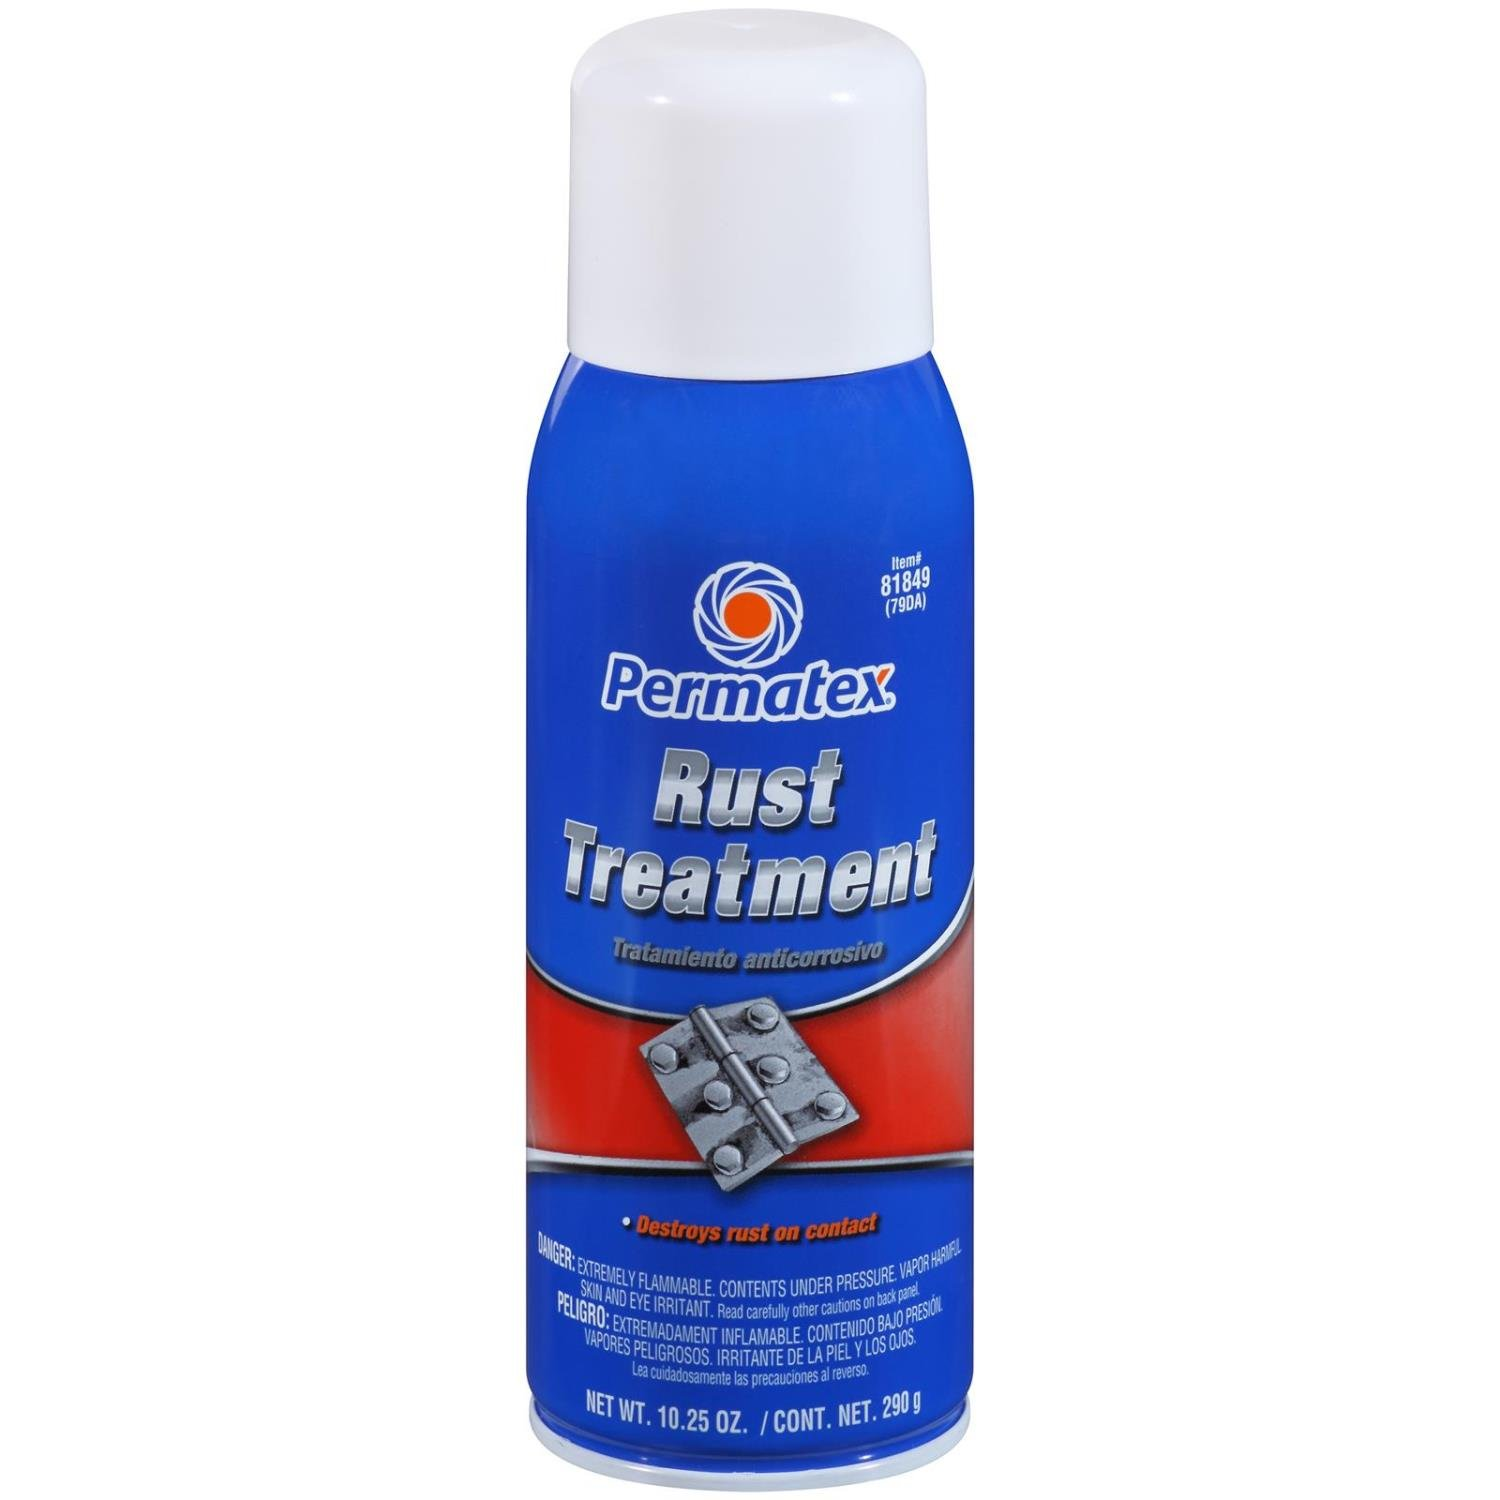 Find Every Shop In The World Selling Loctite Extend Aerosol Rust